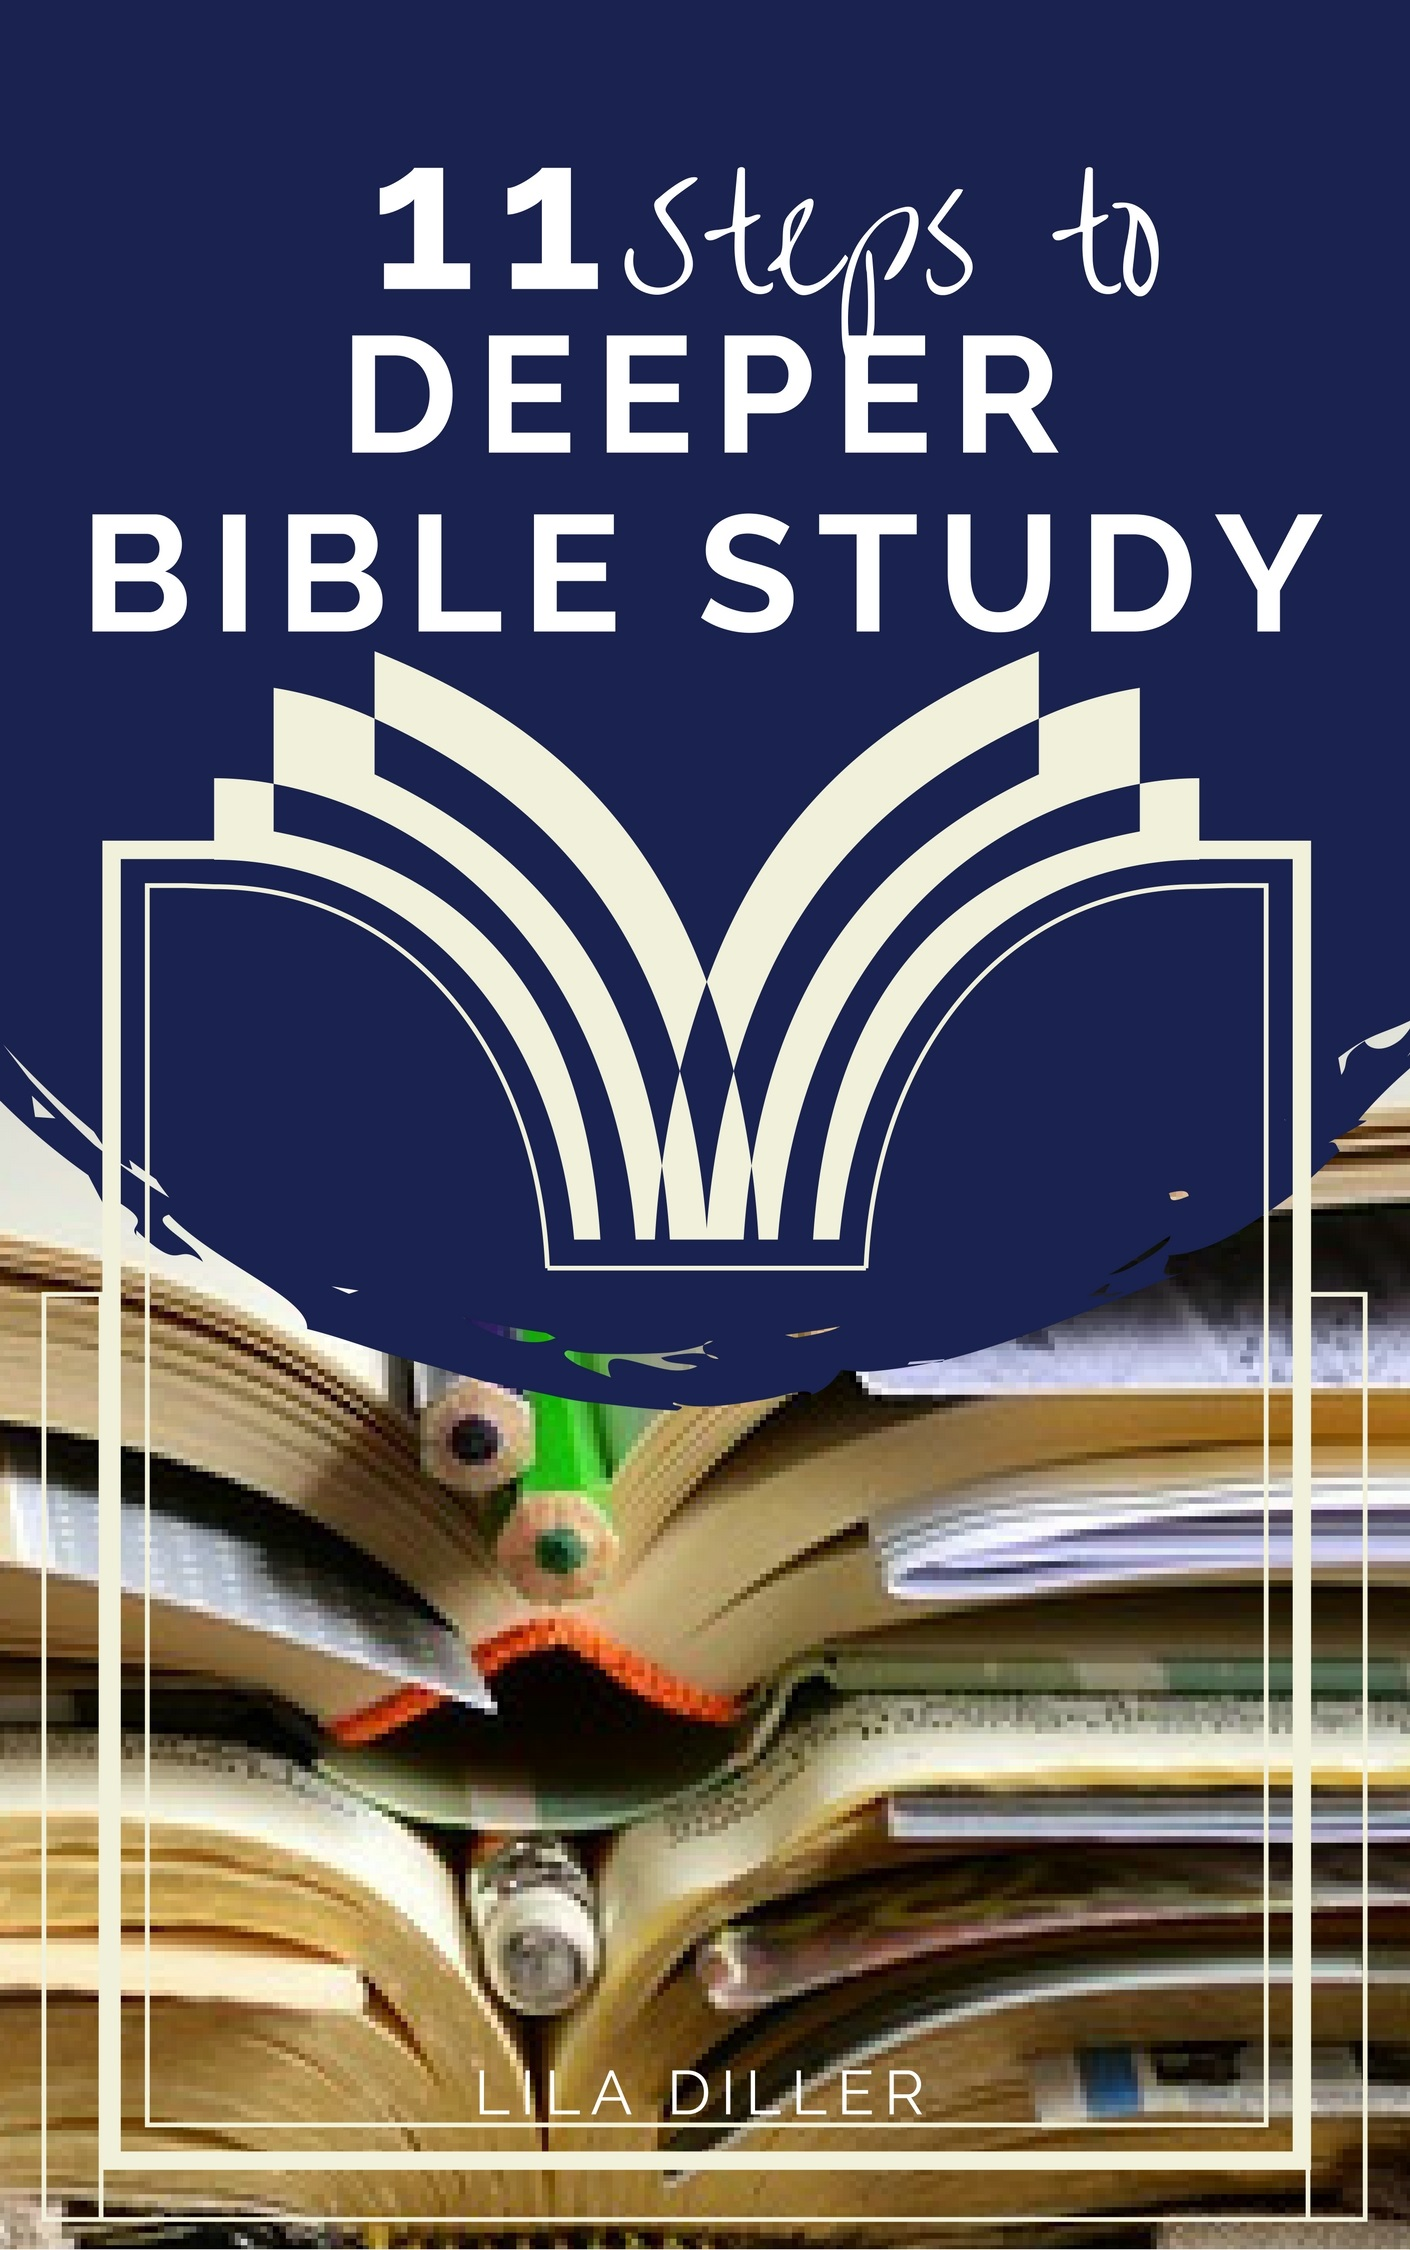 11 Steps to Deeper Bible Study , free ebook by Lila Diller.